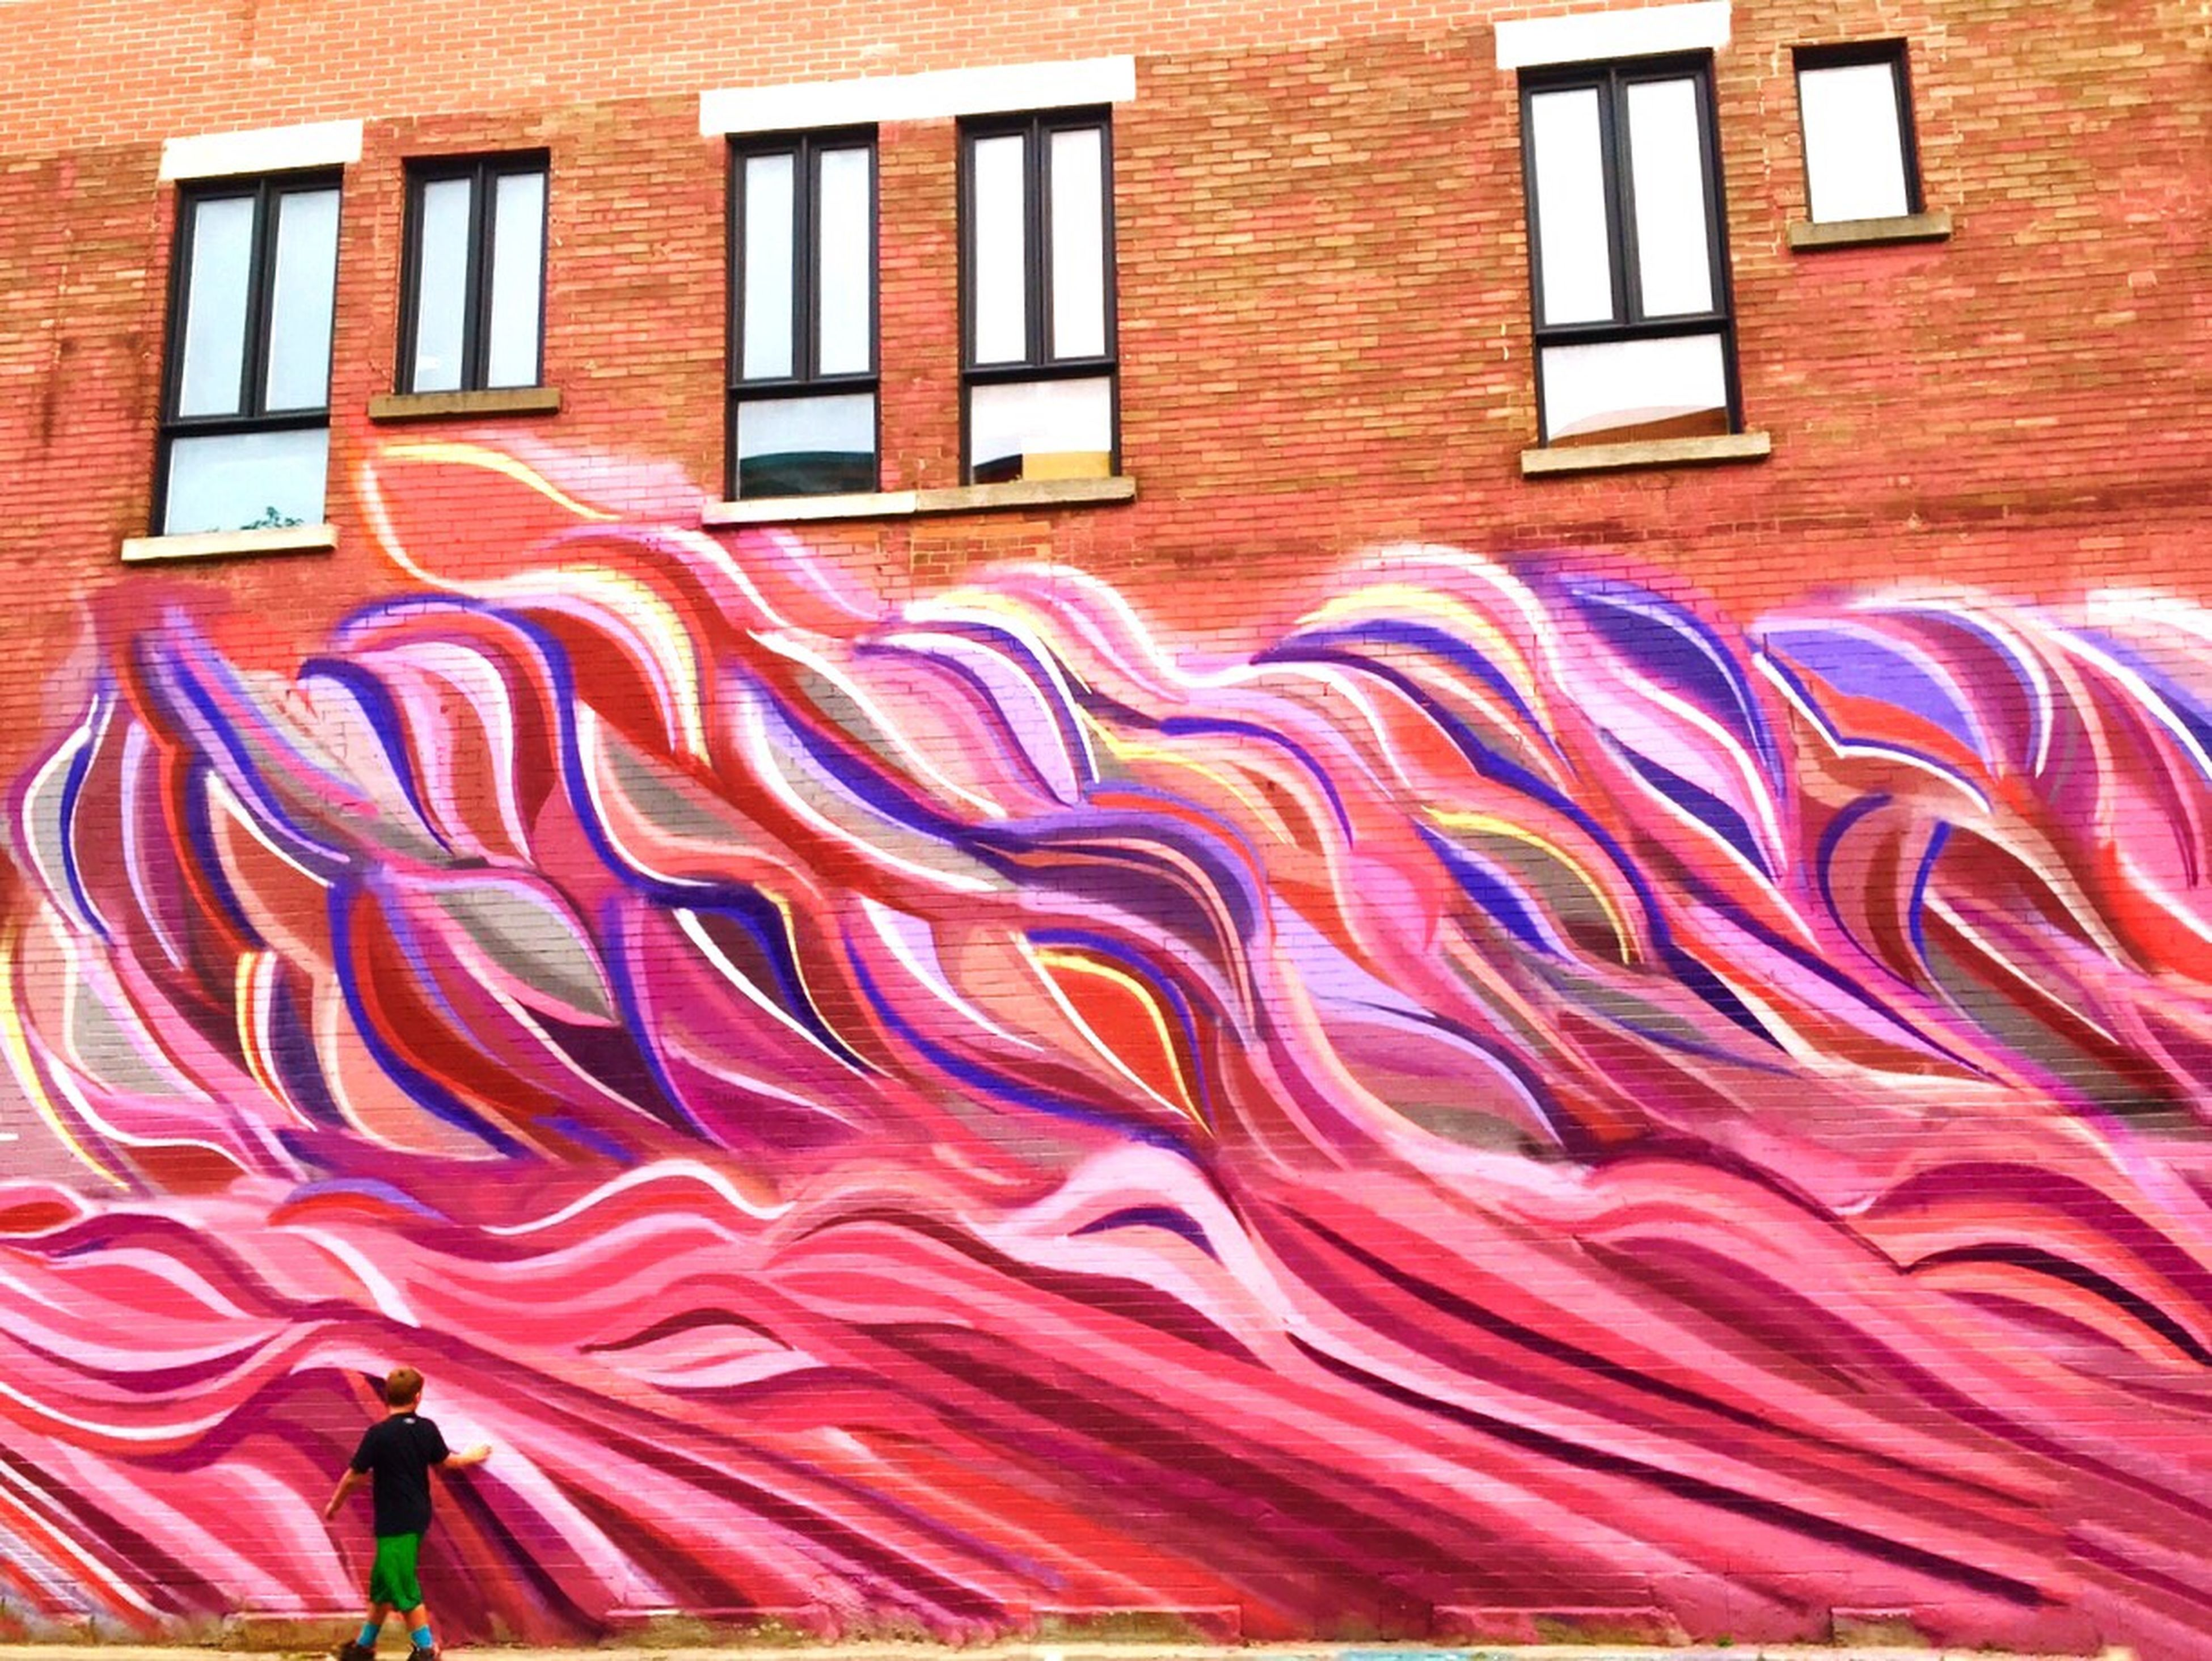 building exterior, architecture, built structure, red, multi colored, window, wall - building feature, art and craft, clothing, building, outdoors, lifestyles, day, pattern, leisure activity, brick wall, creativity, art